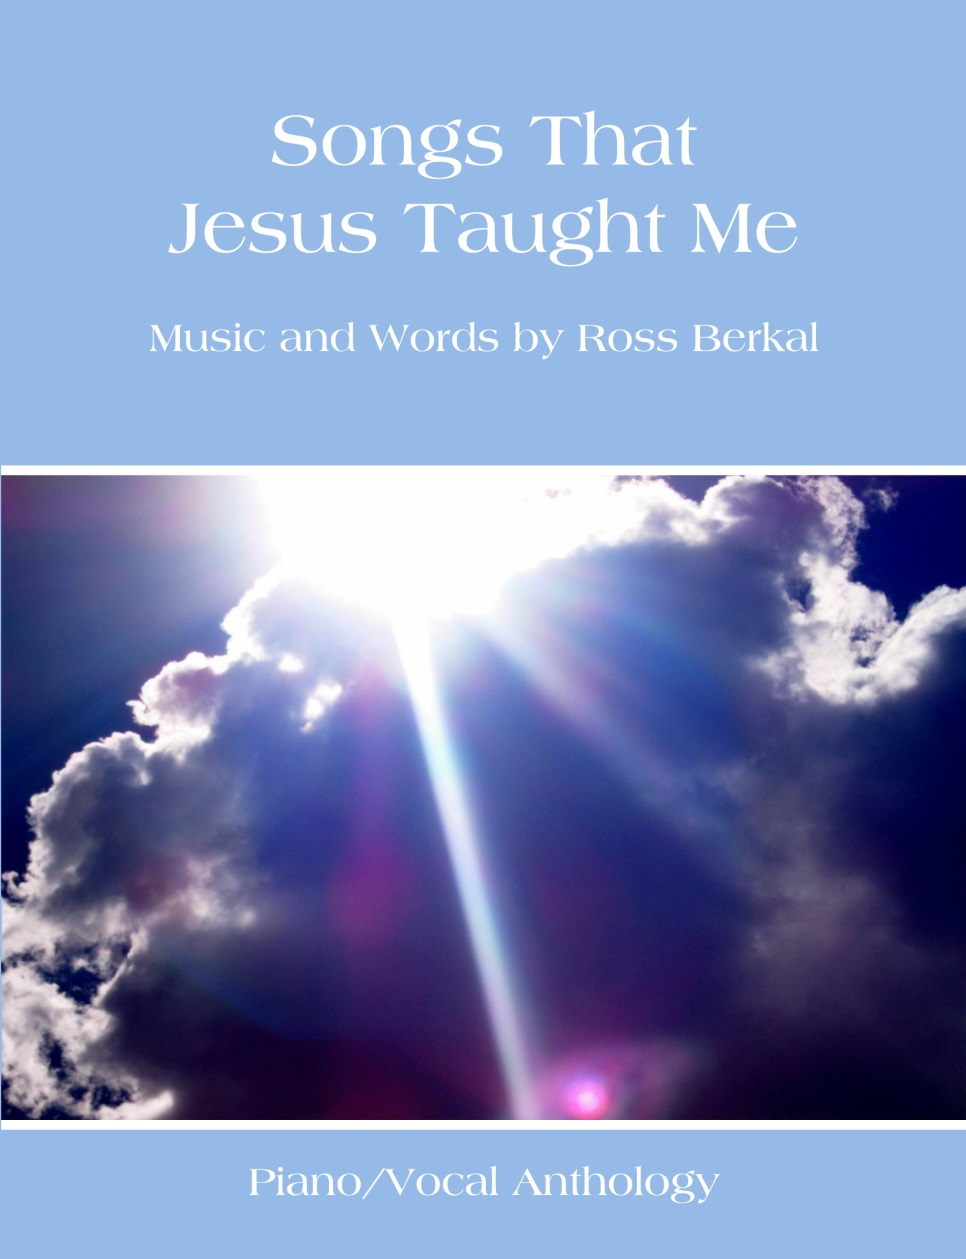 Songs That Jesus Taught Me - Ross Berkal